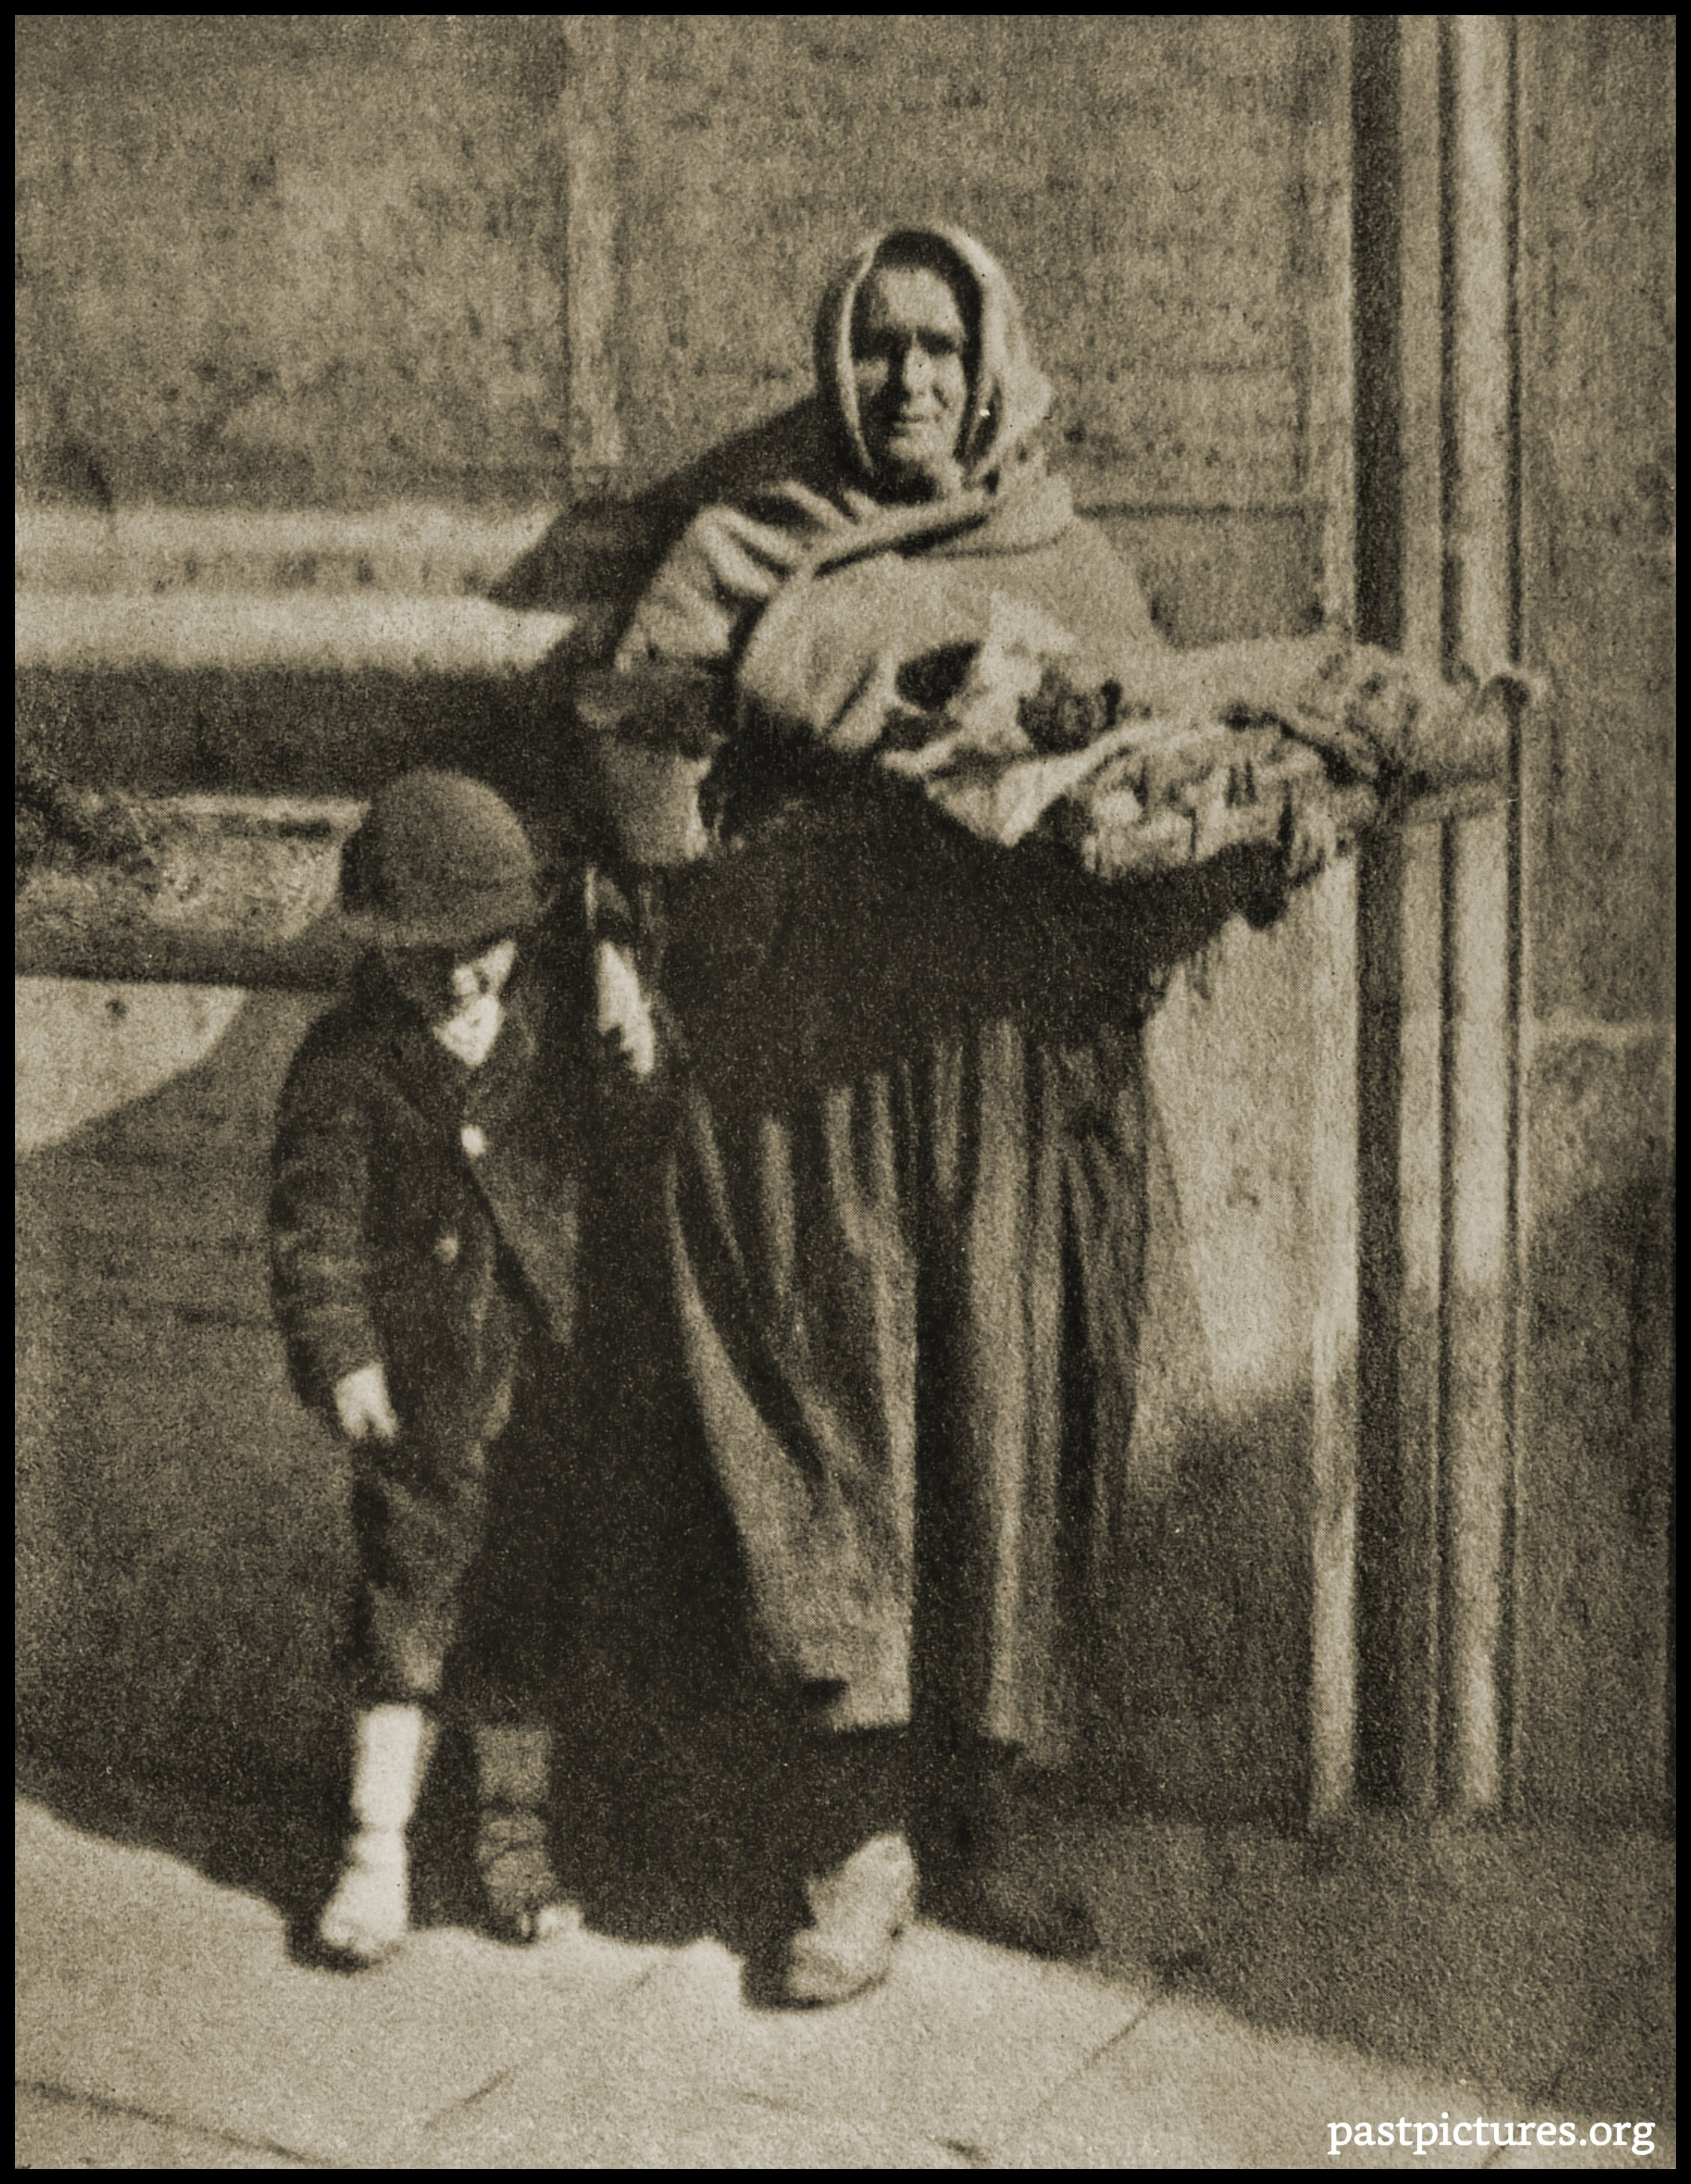 Street Vendors in Rome (Italy) by H. A. Latimer about 1922